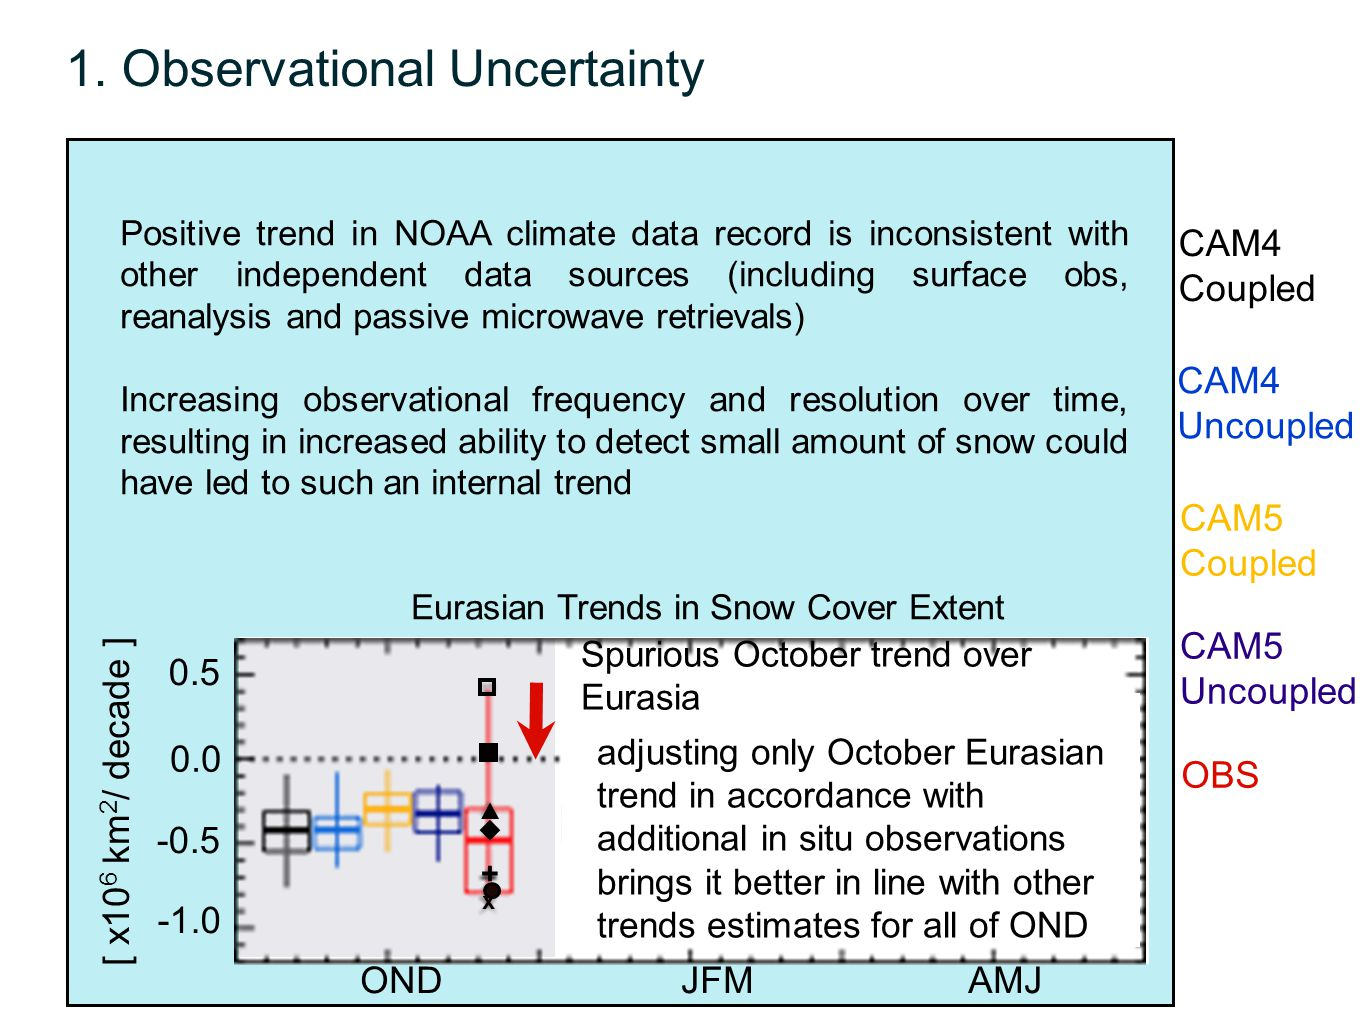 1. Observational Uncertainty 0.5 0.0 -0.5 [ x10 6 km 2 / decade ] Eurasian Trends in Snow Cover Extent CAM4 Coupled CAM4 Uncoupled OBS CAM5 Coupled CA